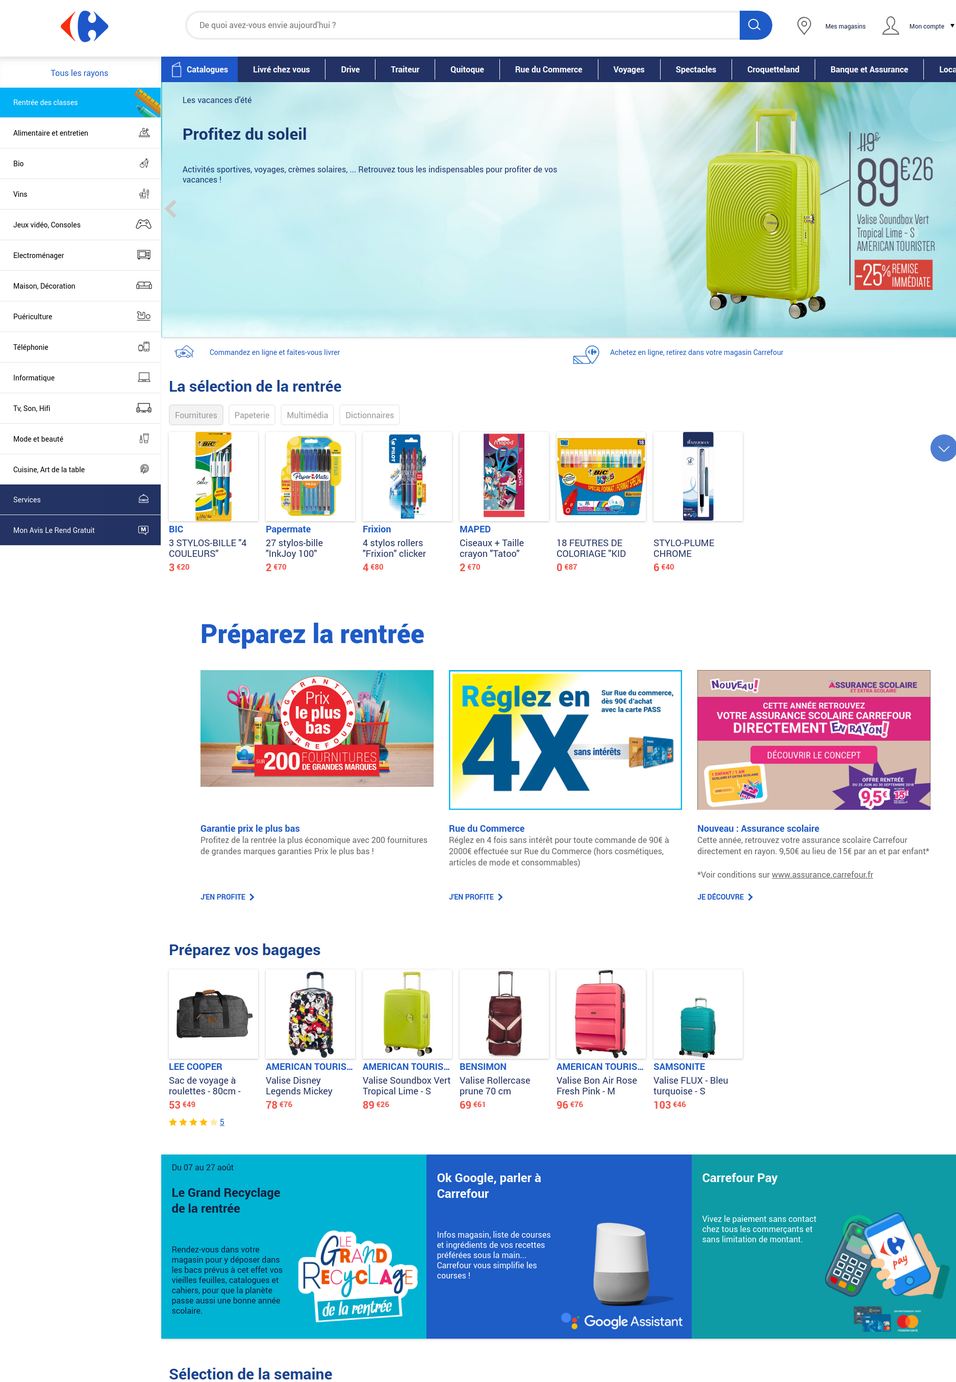 Carrefour's website